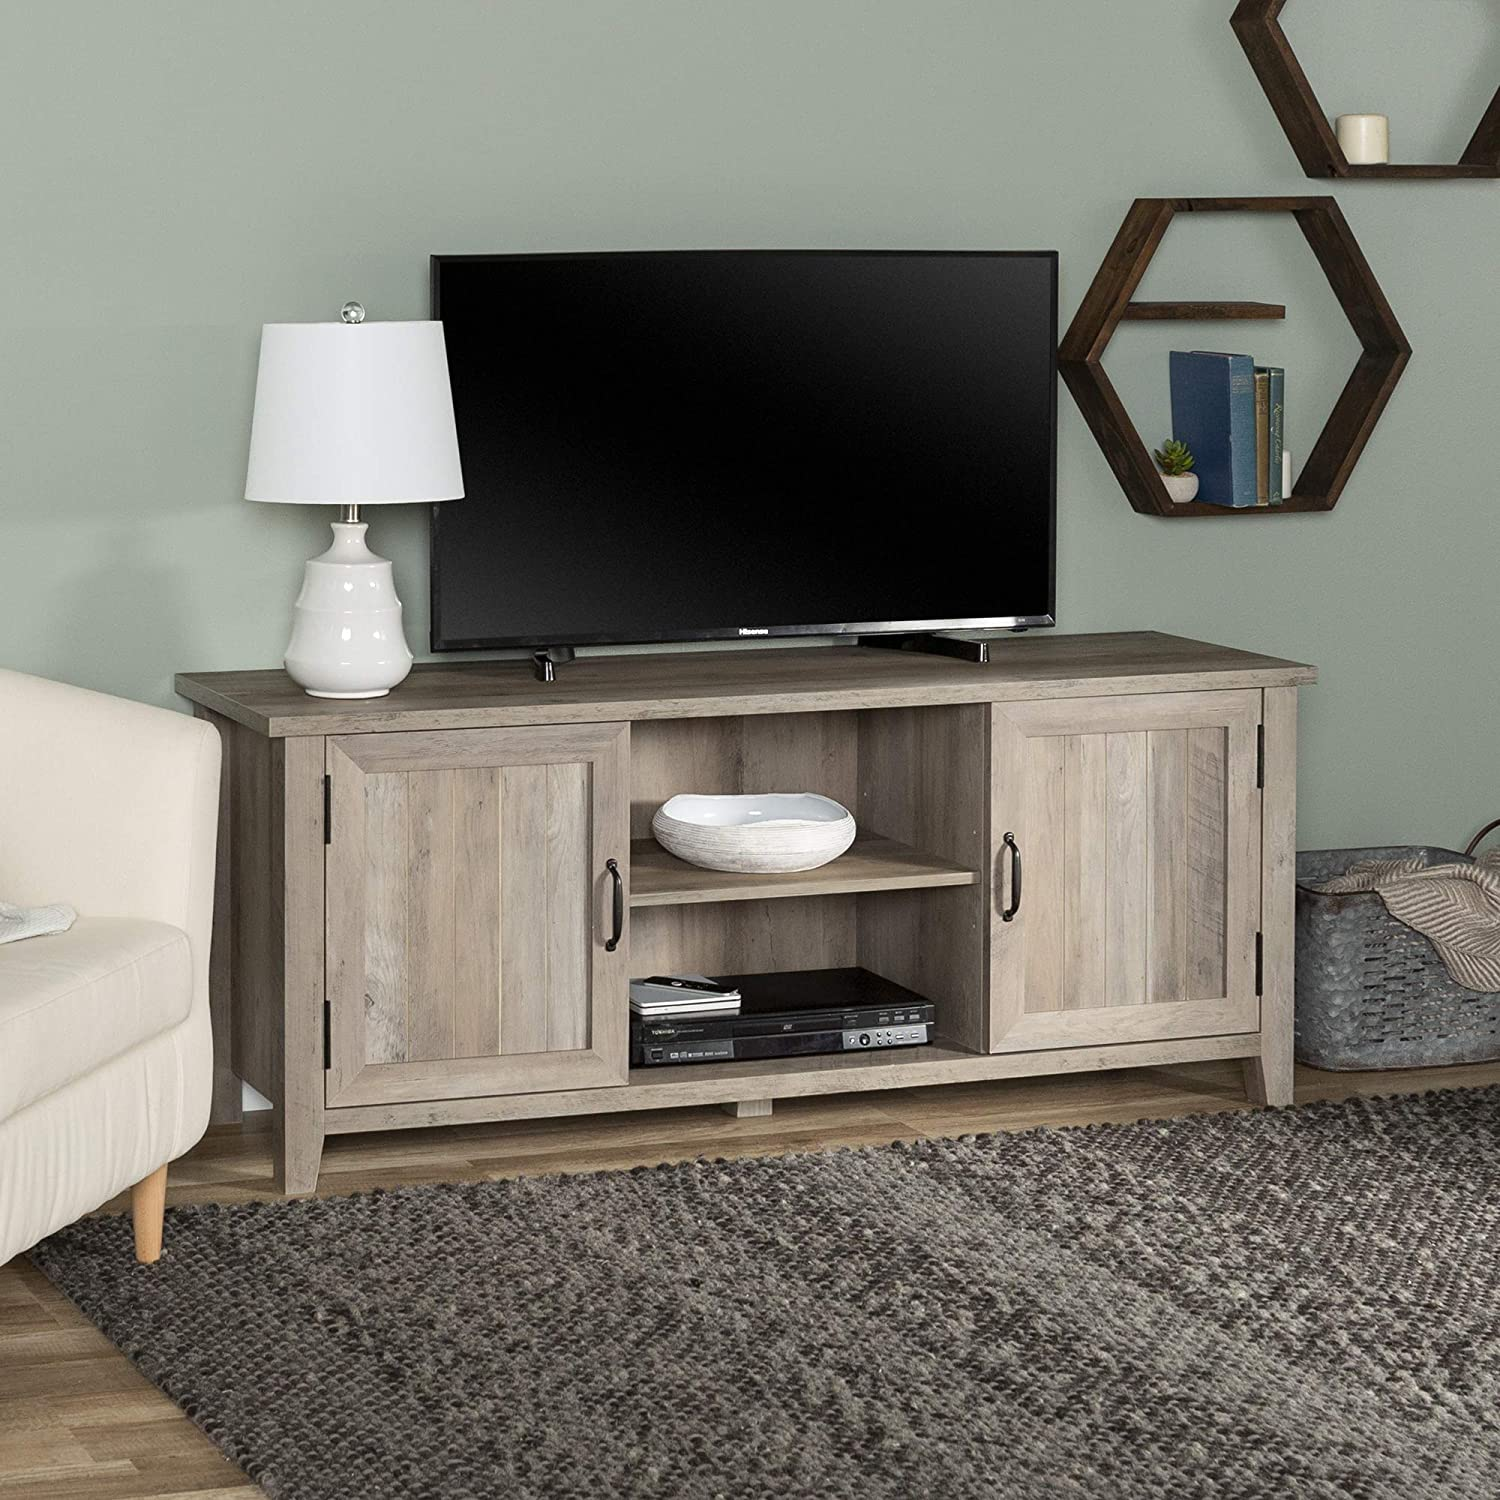 Walker Edison Modern Farmhouse Grooved Wood Stand with Cabinet Doors for TV's up to 65